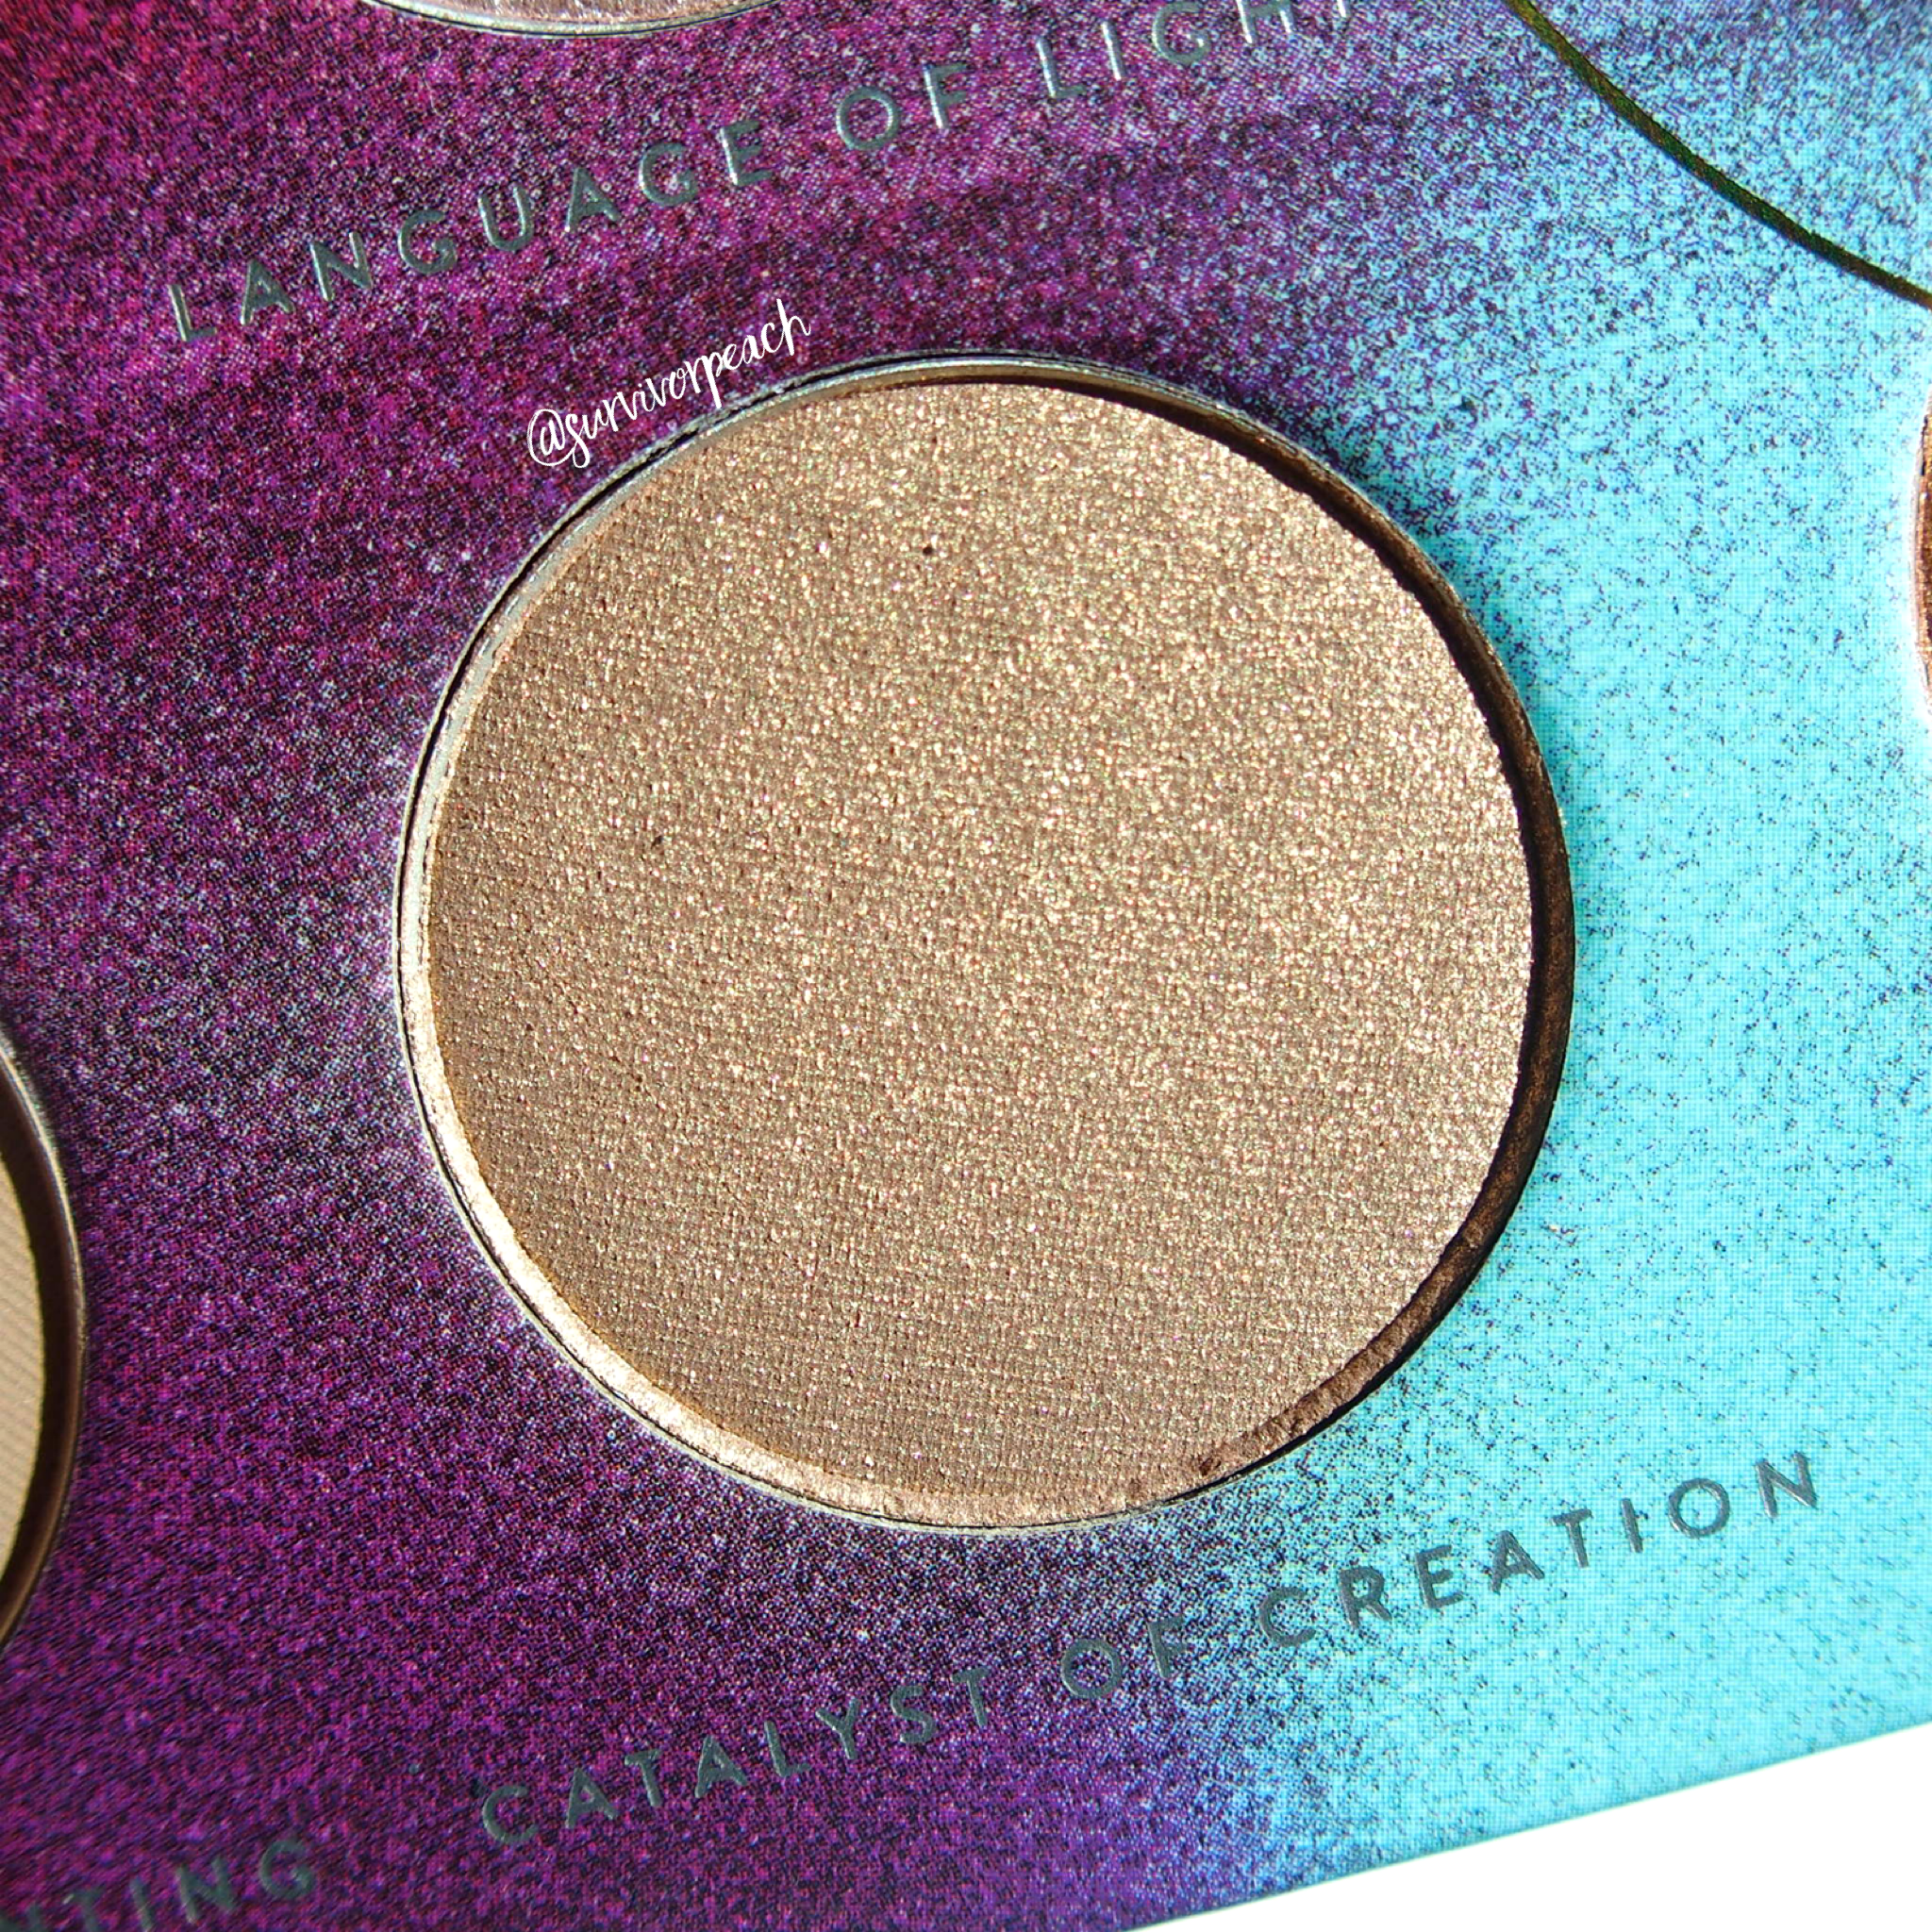 Zoeva Eclectric Eyes Eyeshadow palette - Catalyst of Creation